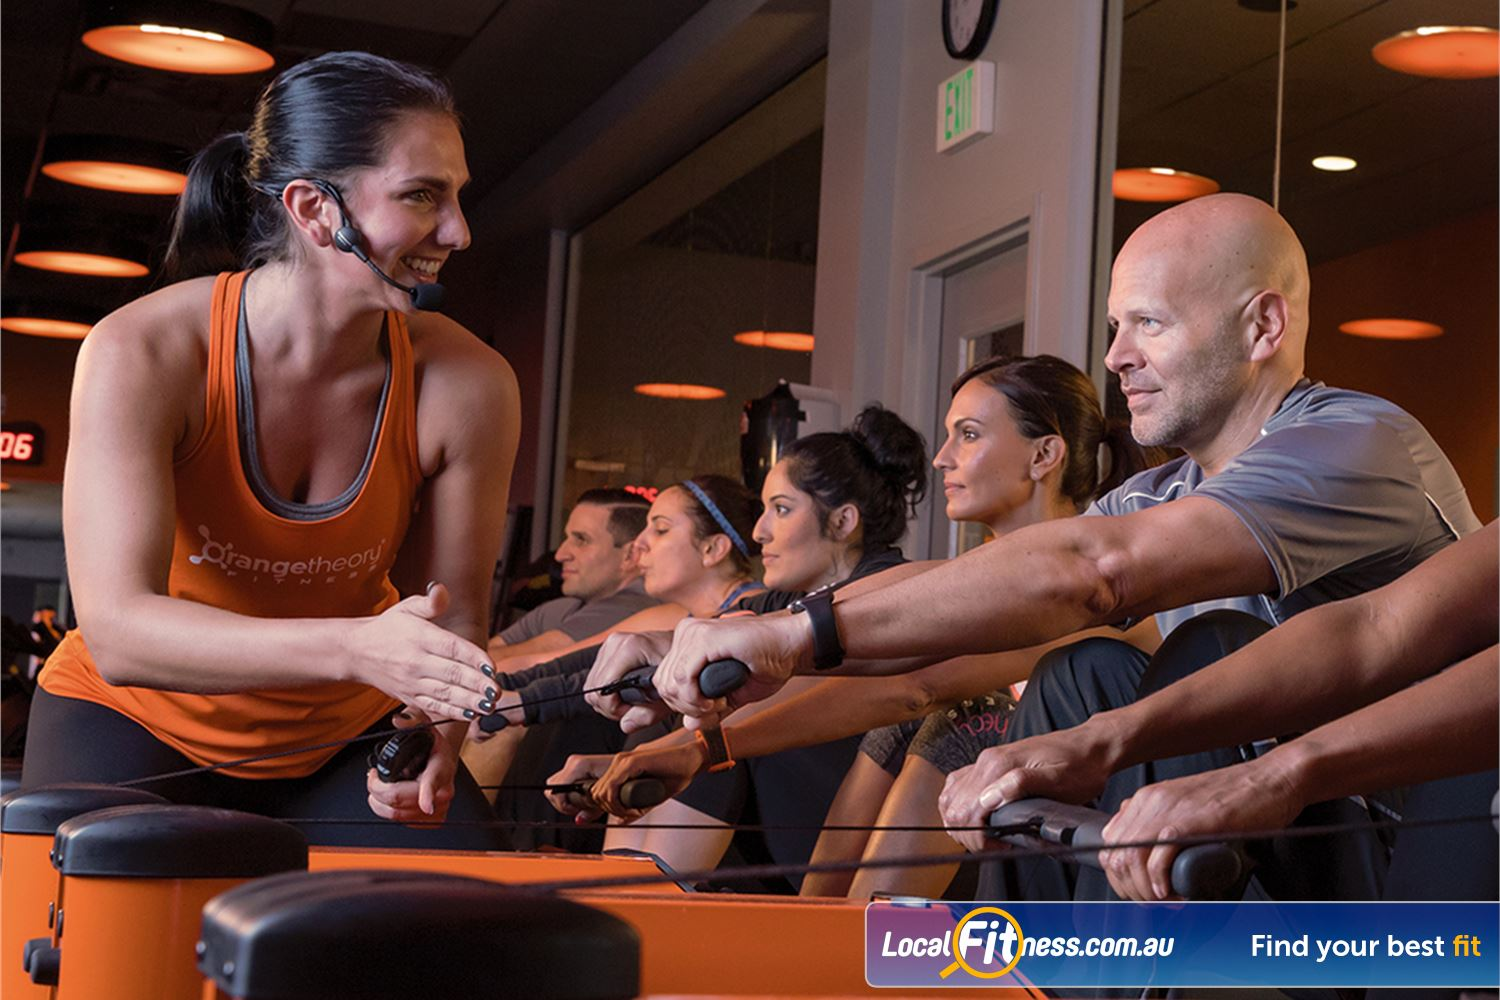 Orangetheory Fitness Hawthorn Our Hawthorn gym includes 12 state-of the-art rowers.